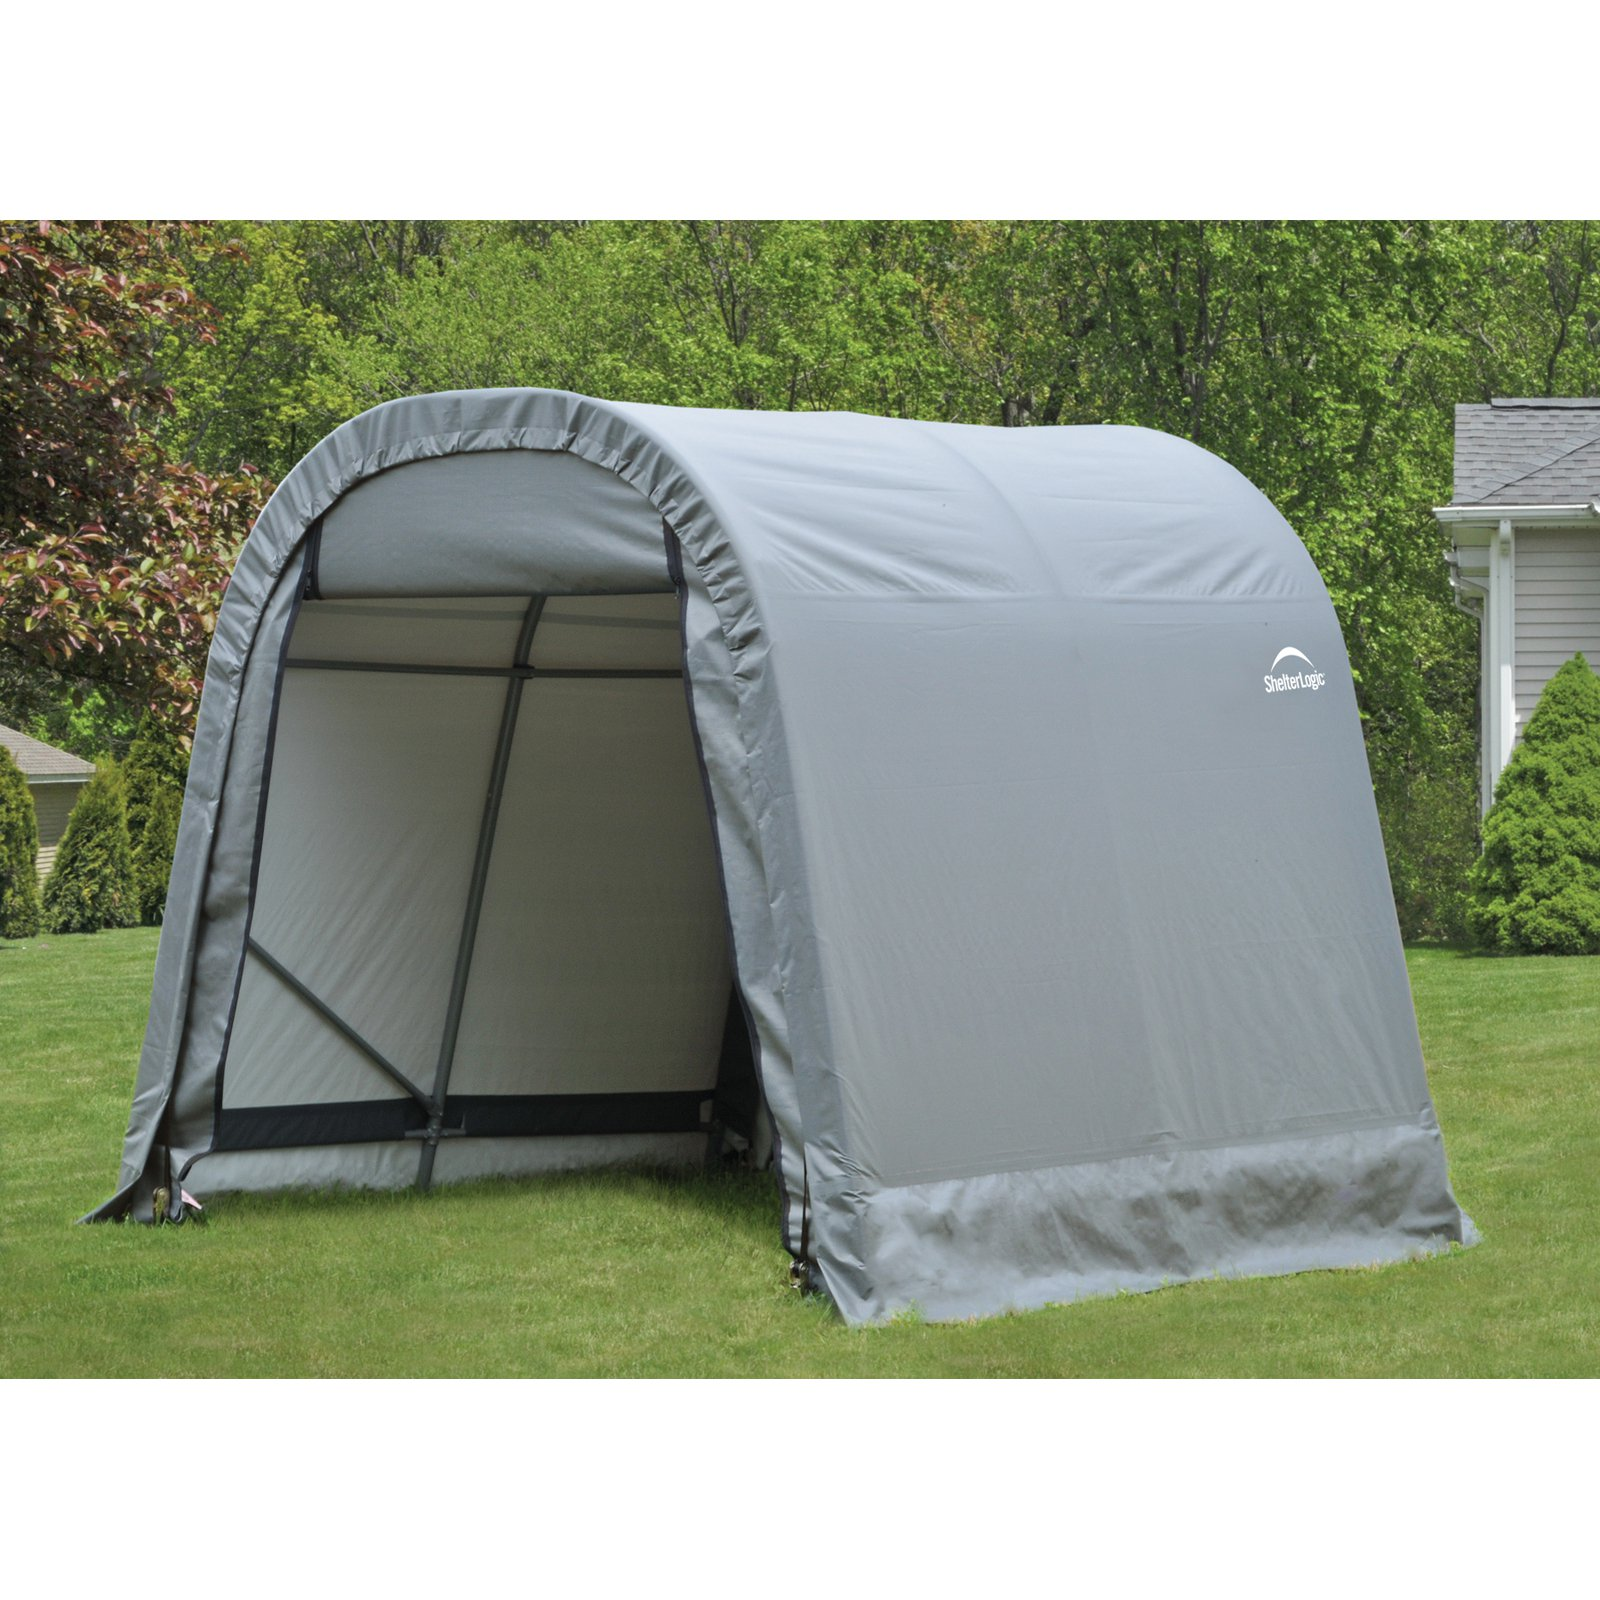 Shelterlogic 8' x 16' x 8' Round Style Shelter, Green